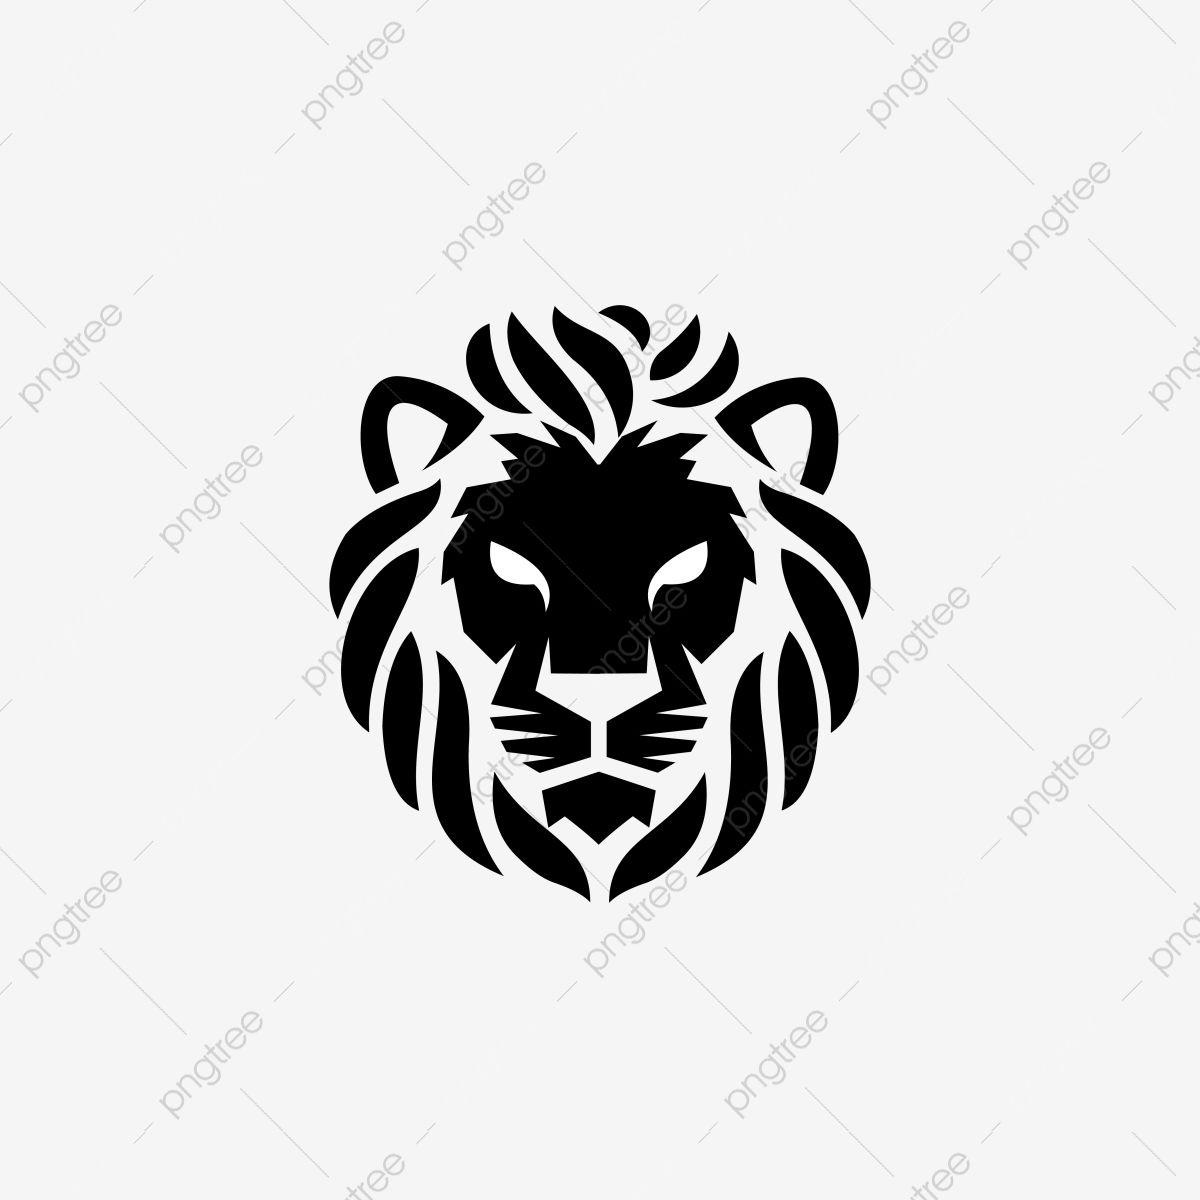 Illustration Of The Logo Of The Head Of A Black And White Lion King Of Lions A Wild Animal With A White Background Lion King Logo Icons Animal Icons Png And